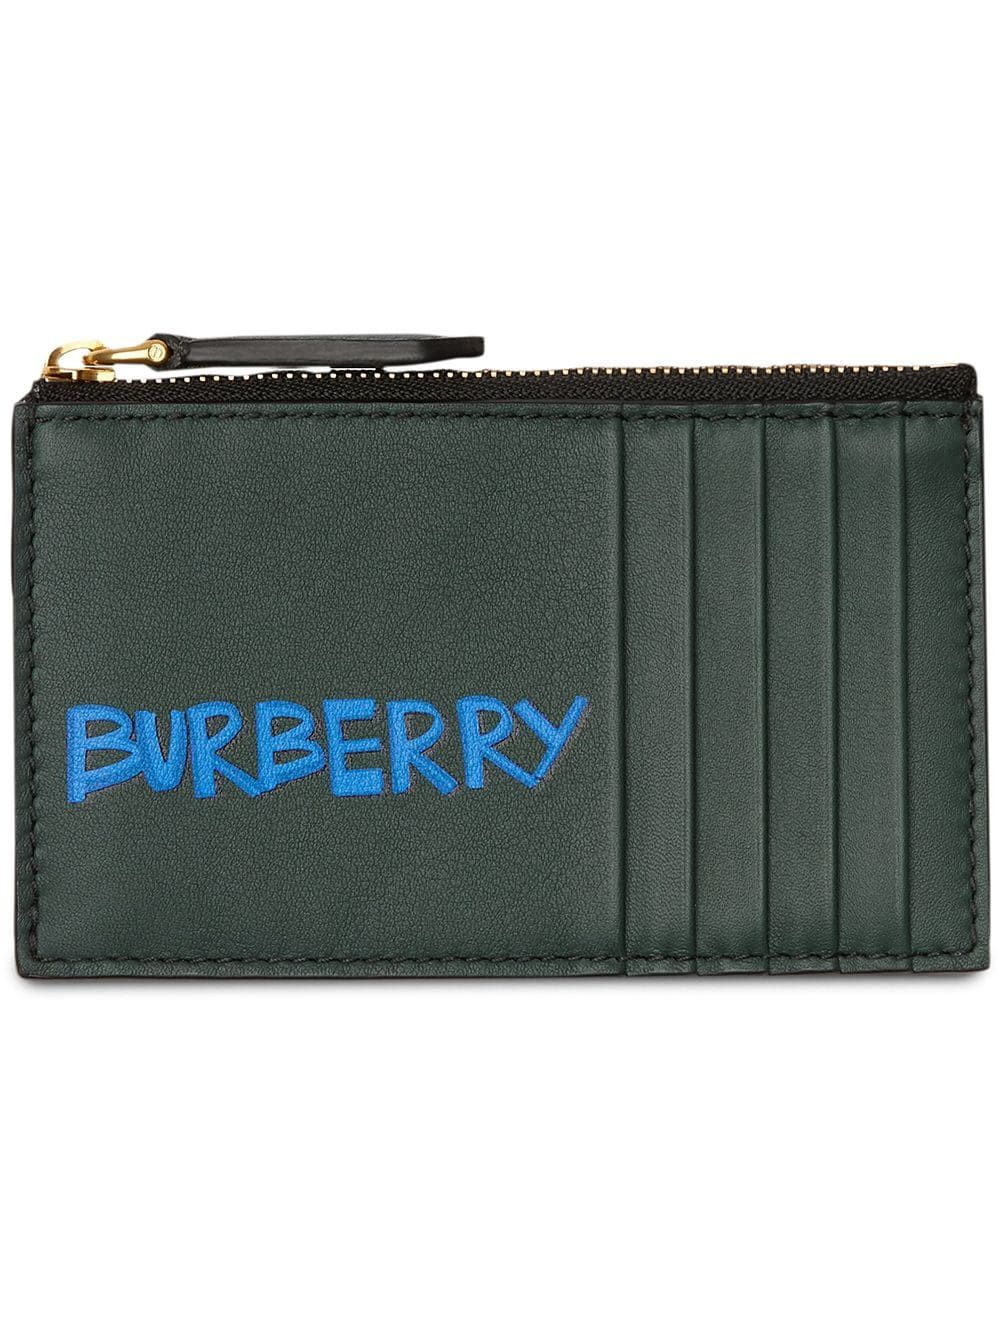 finest selection ba84f cc6b7 BURBERRY BURBERRY GRAFFITI PRINT LEATHER ZIP CARD CASE - GREEN ...